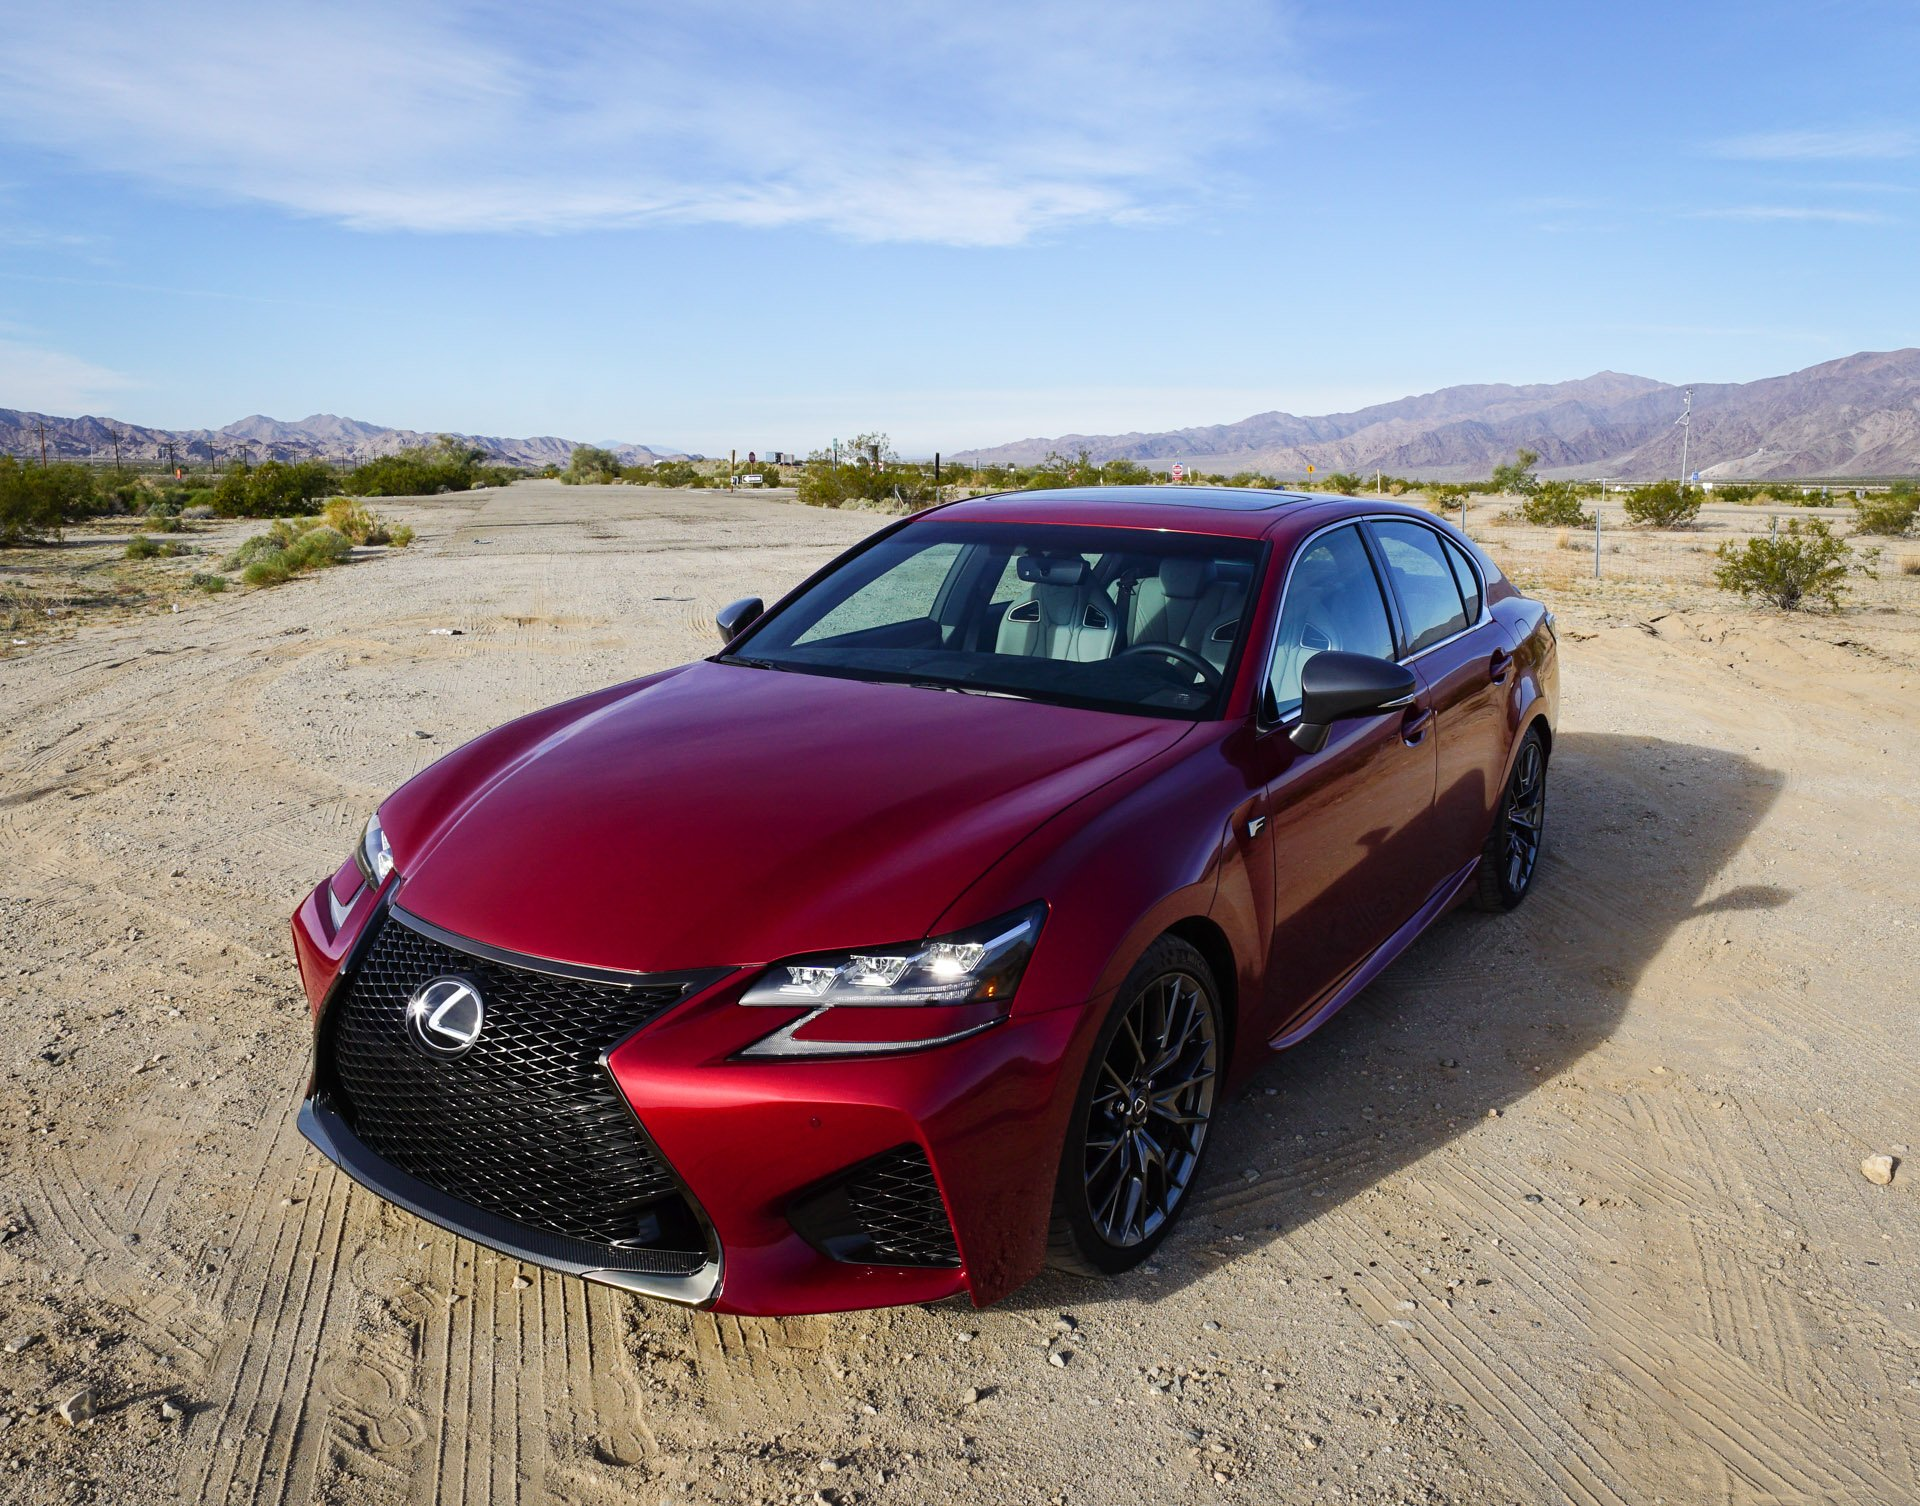 First Drive Review: 2016 Lexus GS F